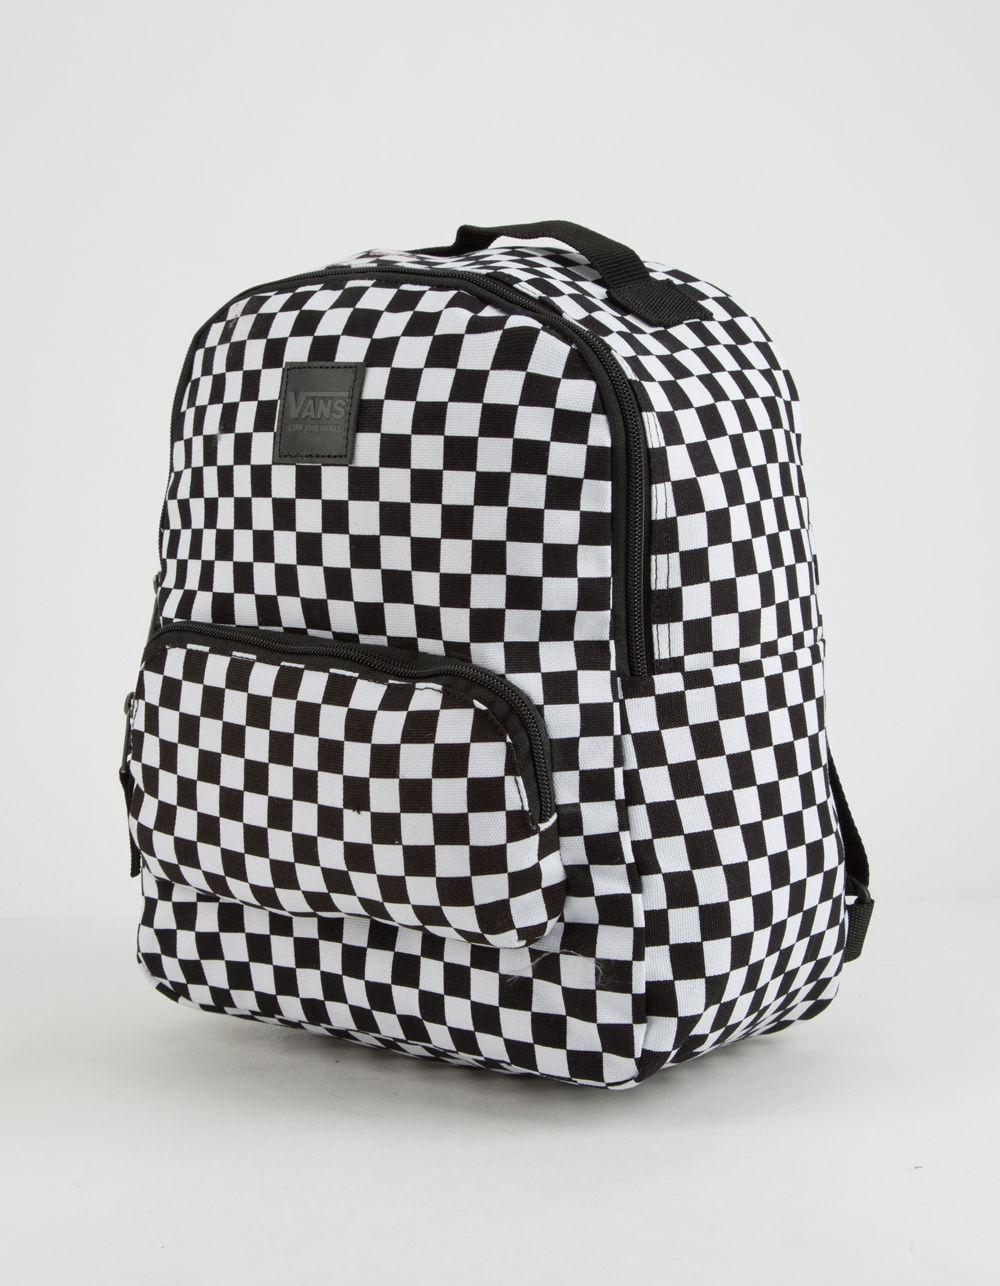 662ef546e6eb Lyst - Vans Checkered Mini Backpack in Black